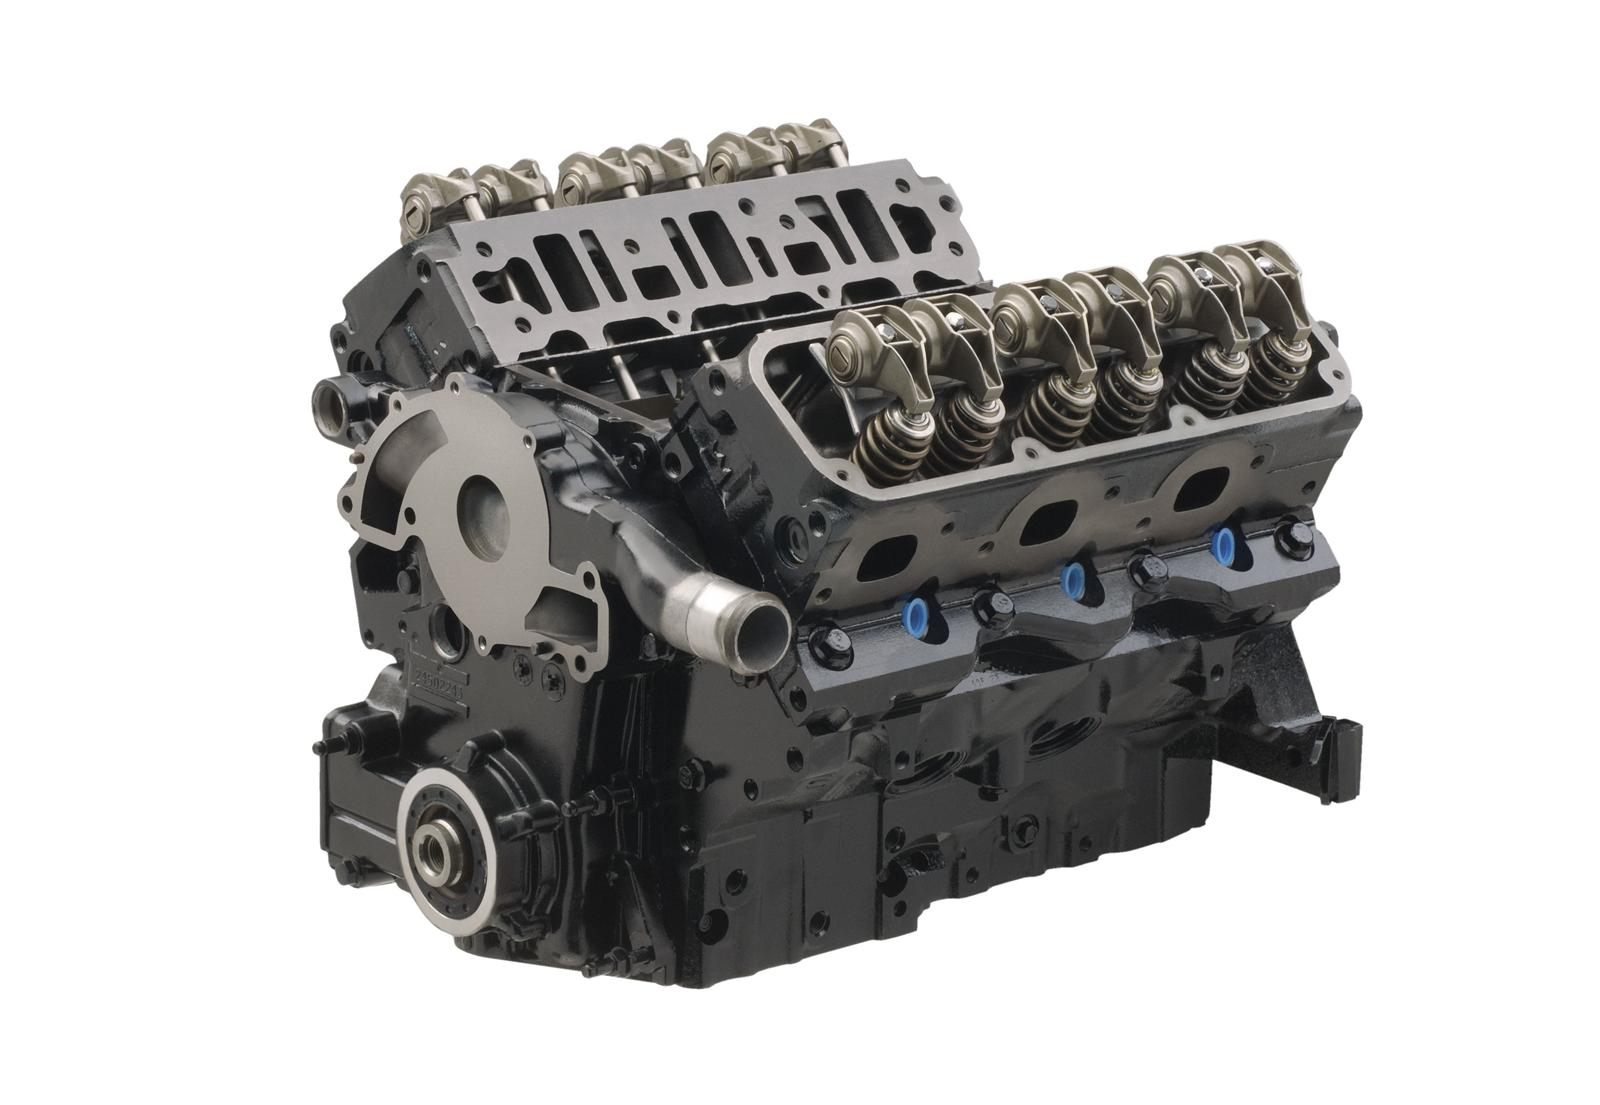 free shipping on orders over 99 at summit racing chevrolet performance 3 8l 231 c i d remanufactured long block crate engines 19168948